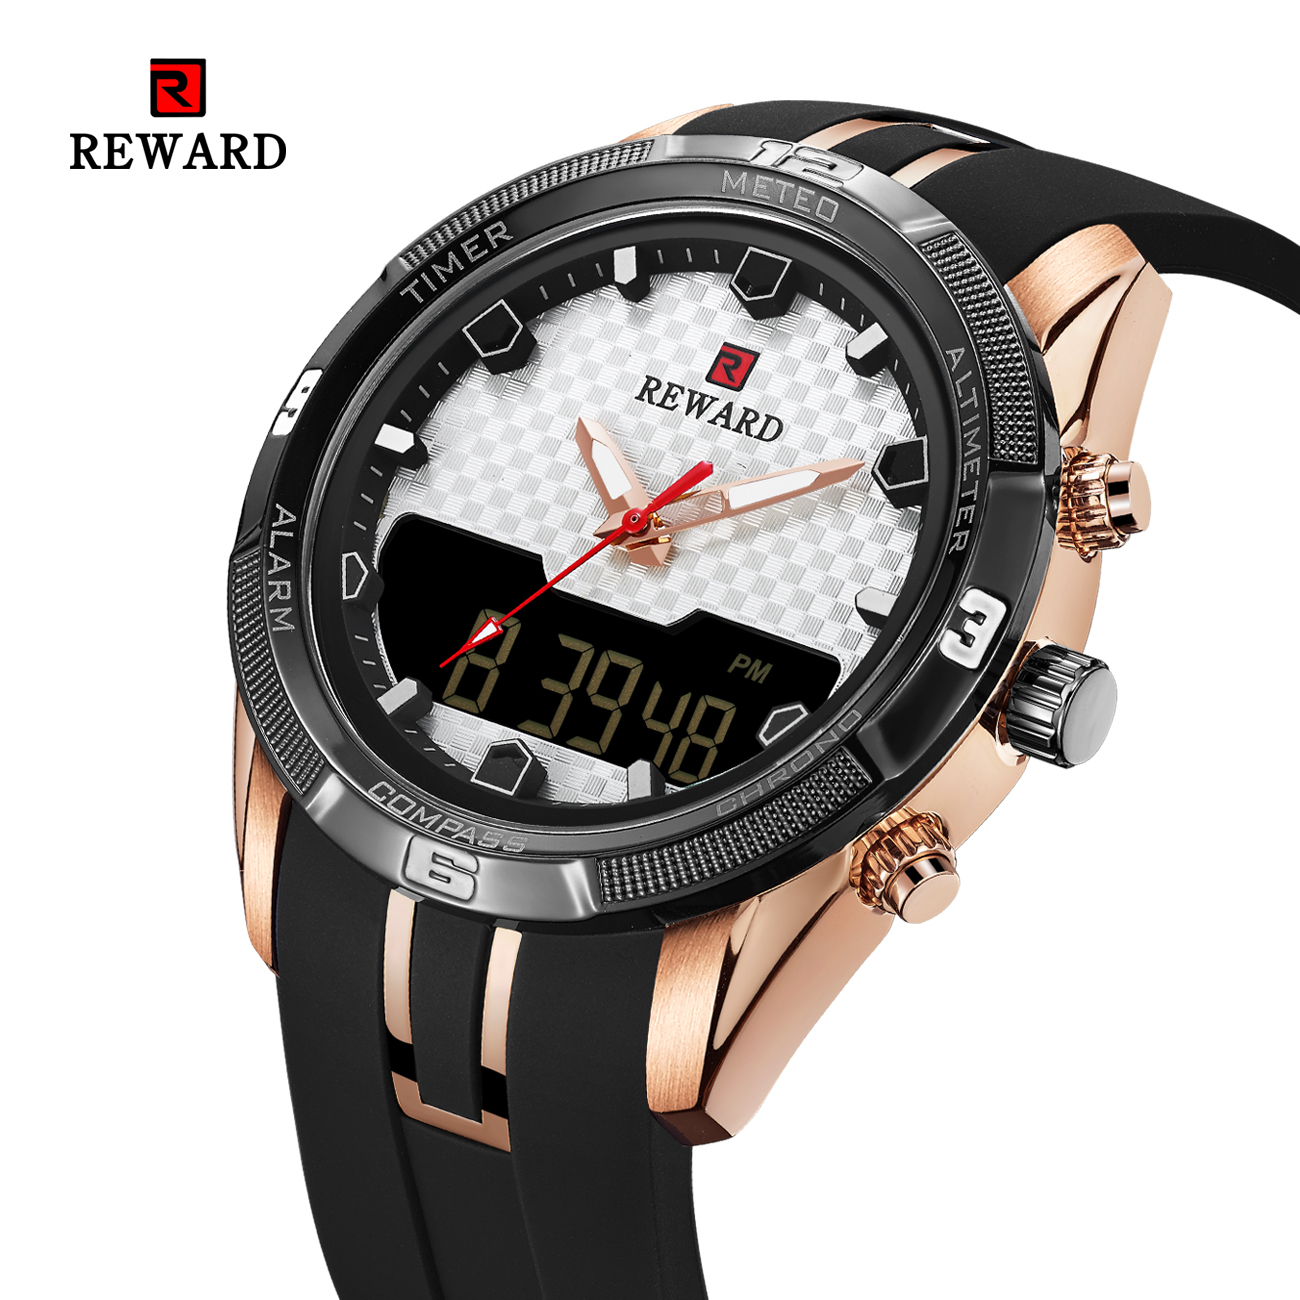 watch men military watch Suspended surface design dual display soft silicone belt  Waterproof Chronograph RD63095Mwatch men military watch Suspended surface design dual display soft silicone belt  Waterproof Chronograph RD63095M